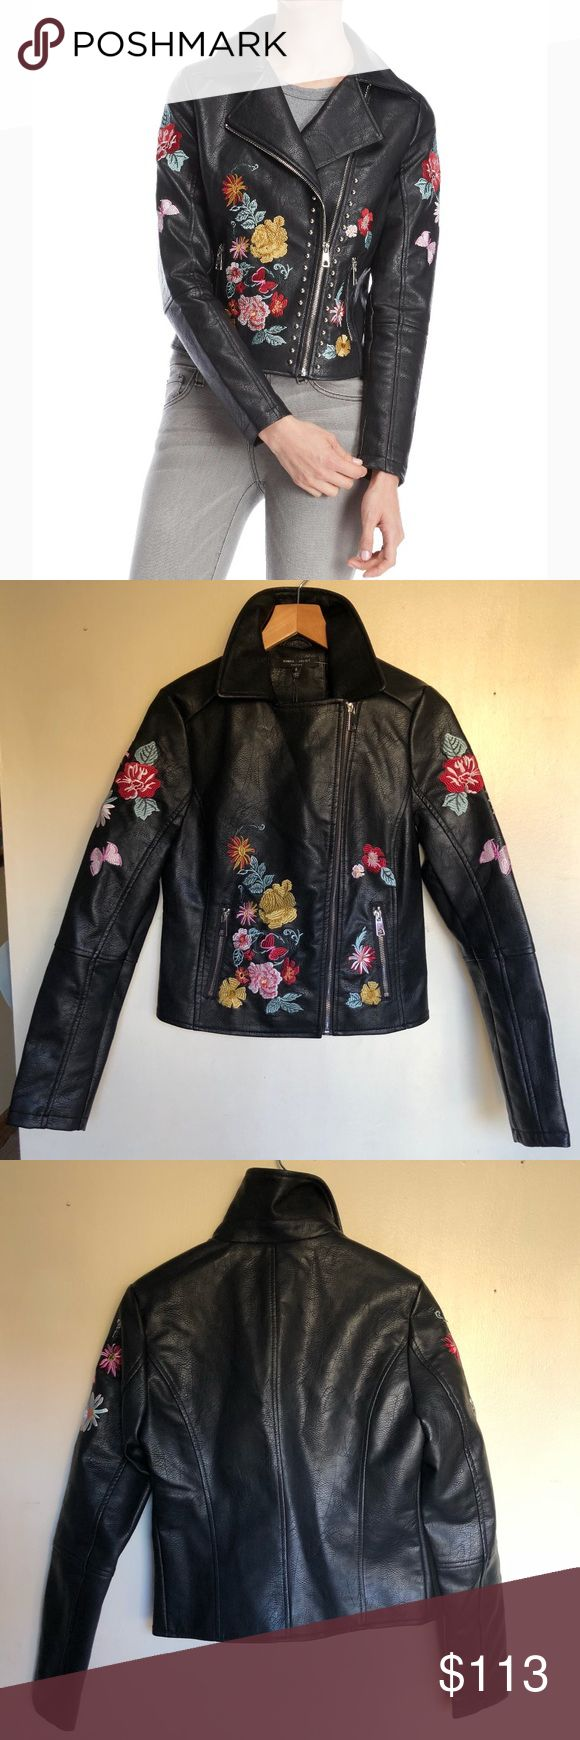 🎉HP🎉 Romeo & Juliet faux leather jacket NWT Romeo and Juliet Couture floral embroidered black faux leather jacket size Medium (already sold the Small shown in images). The shell is 100% polyurethane and the lining is 100% polyester material. Last 7 images of the actual item for sale. Feel free to make any reasonable offers using the Offer button and plz don't haggle in the comments section. No trades. Romeo & Juliet Couture Jackets & Coats